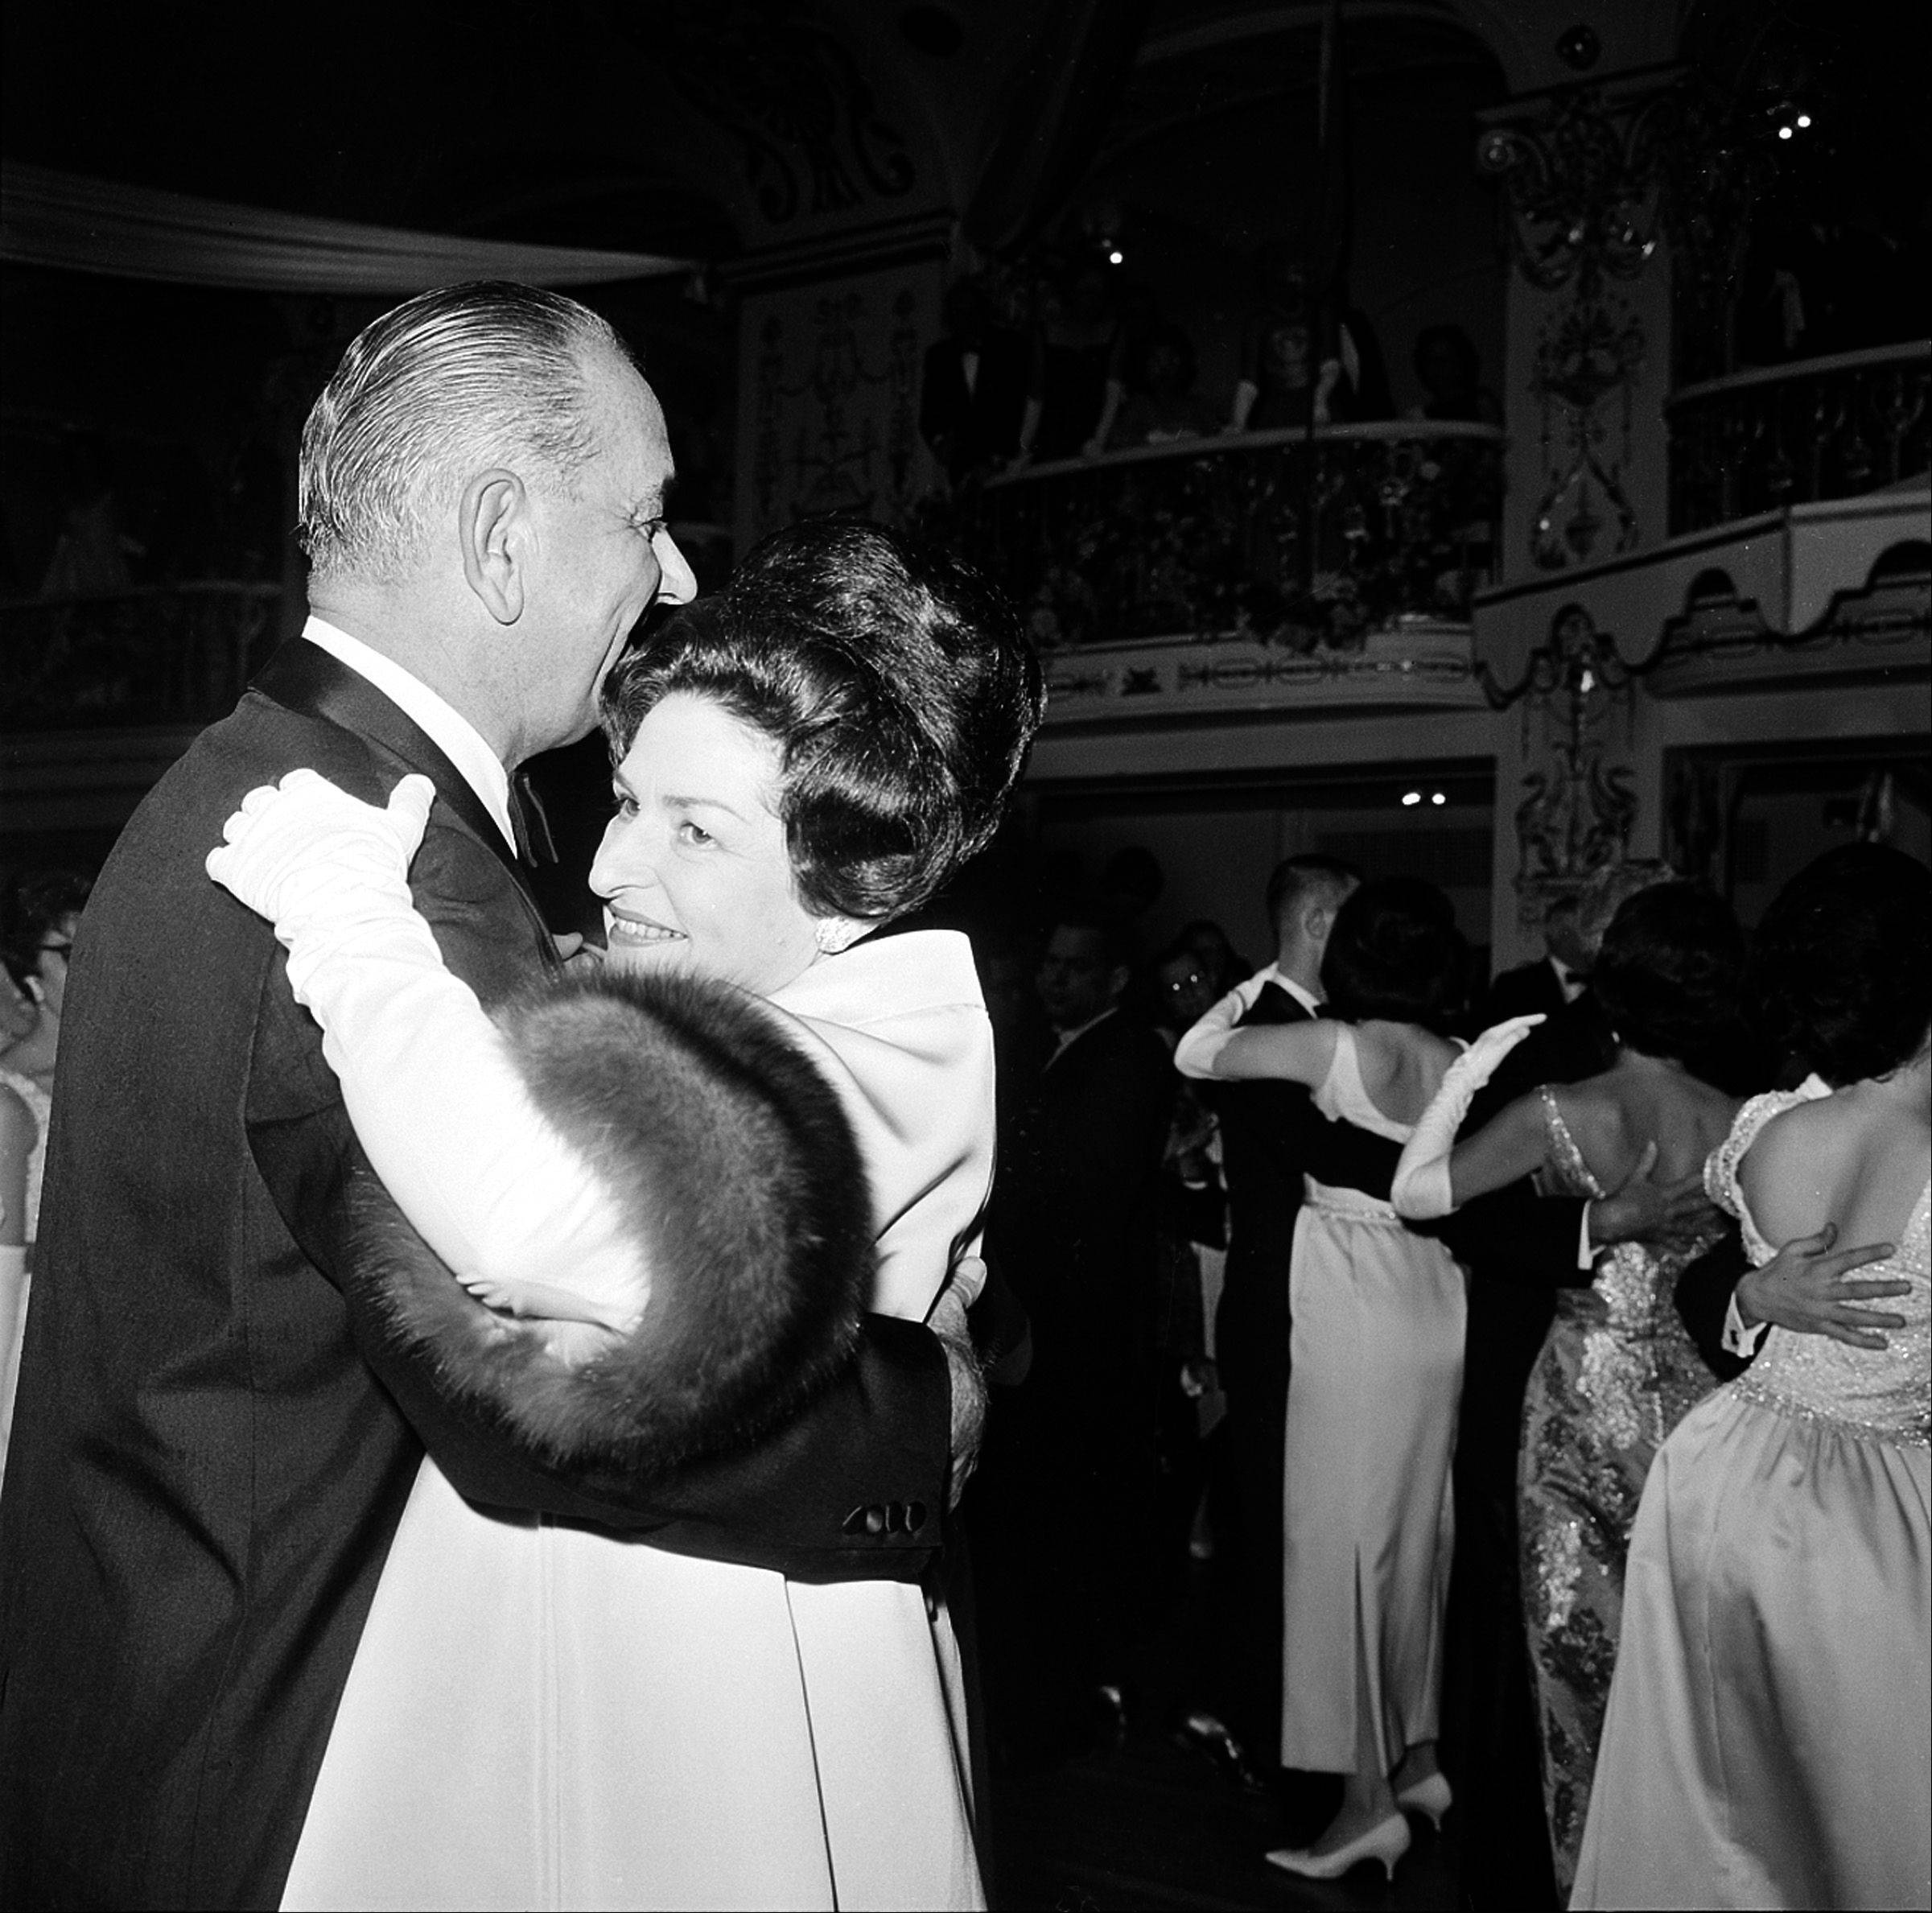 U.S. President Lyndon B. Johnson and the first lady, Lady Bird, dance at the Inaugural Ball at the Mayflower Hotel in Washington, D.C., Jan. 20, 1965.